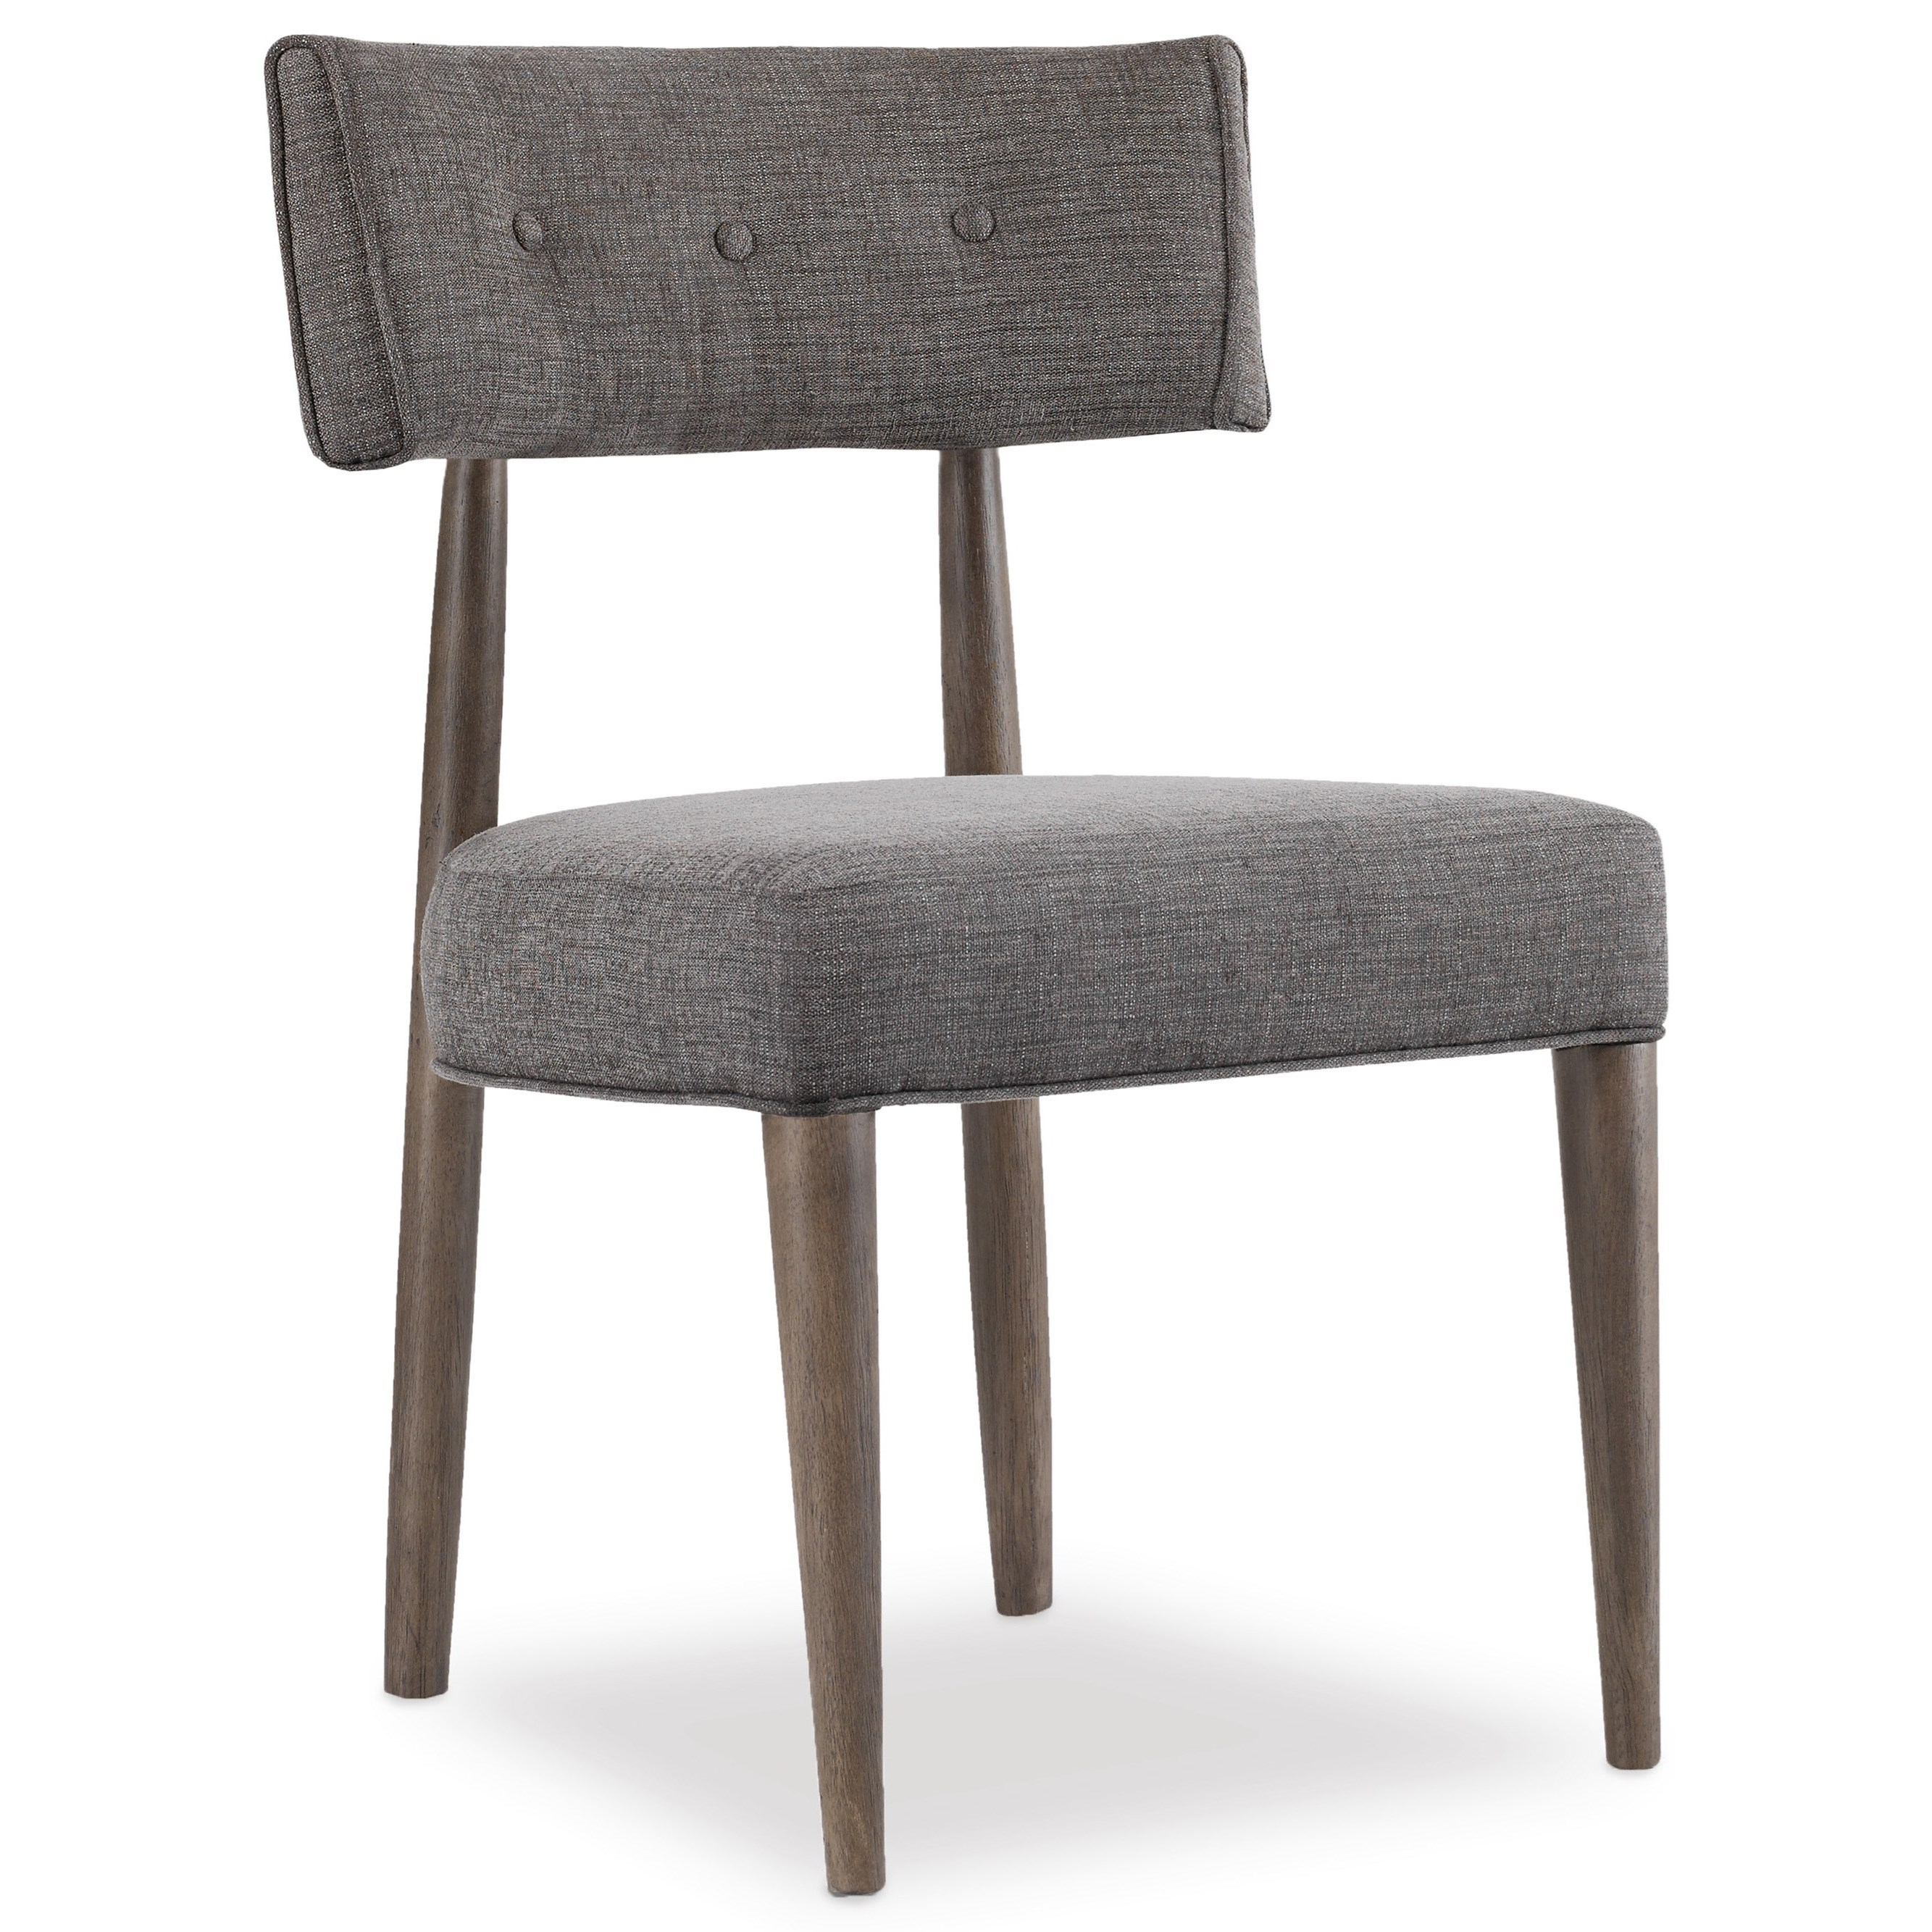 Hooker furniture curata modern upholstered chair stoney for Modern upholstered dining chairs